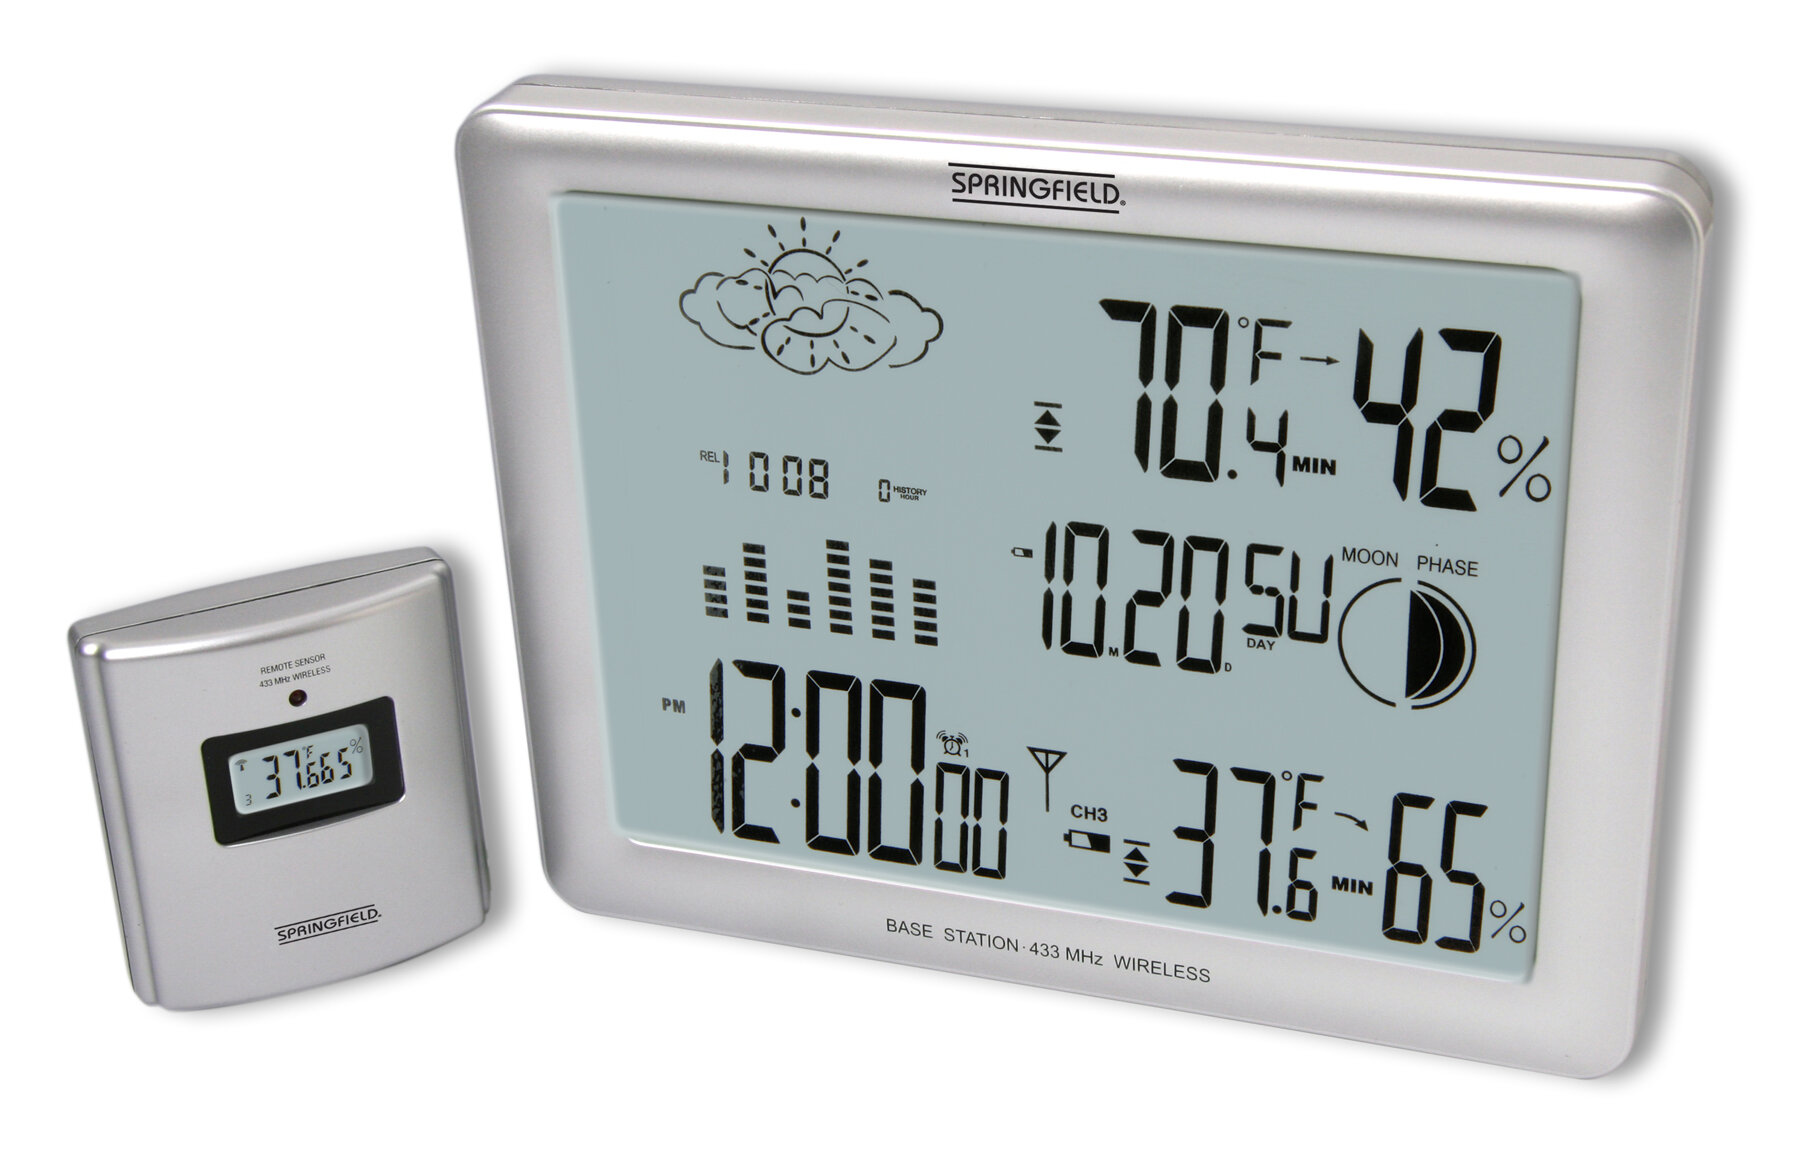 Taylor Springfield Deluxe/Jumbo LCD Wireless Weather Forecaster ...